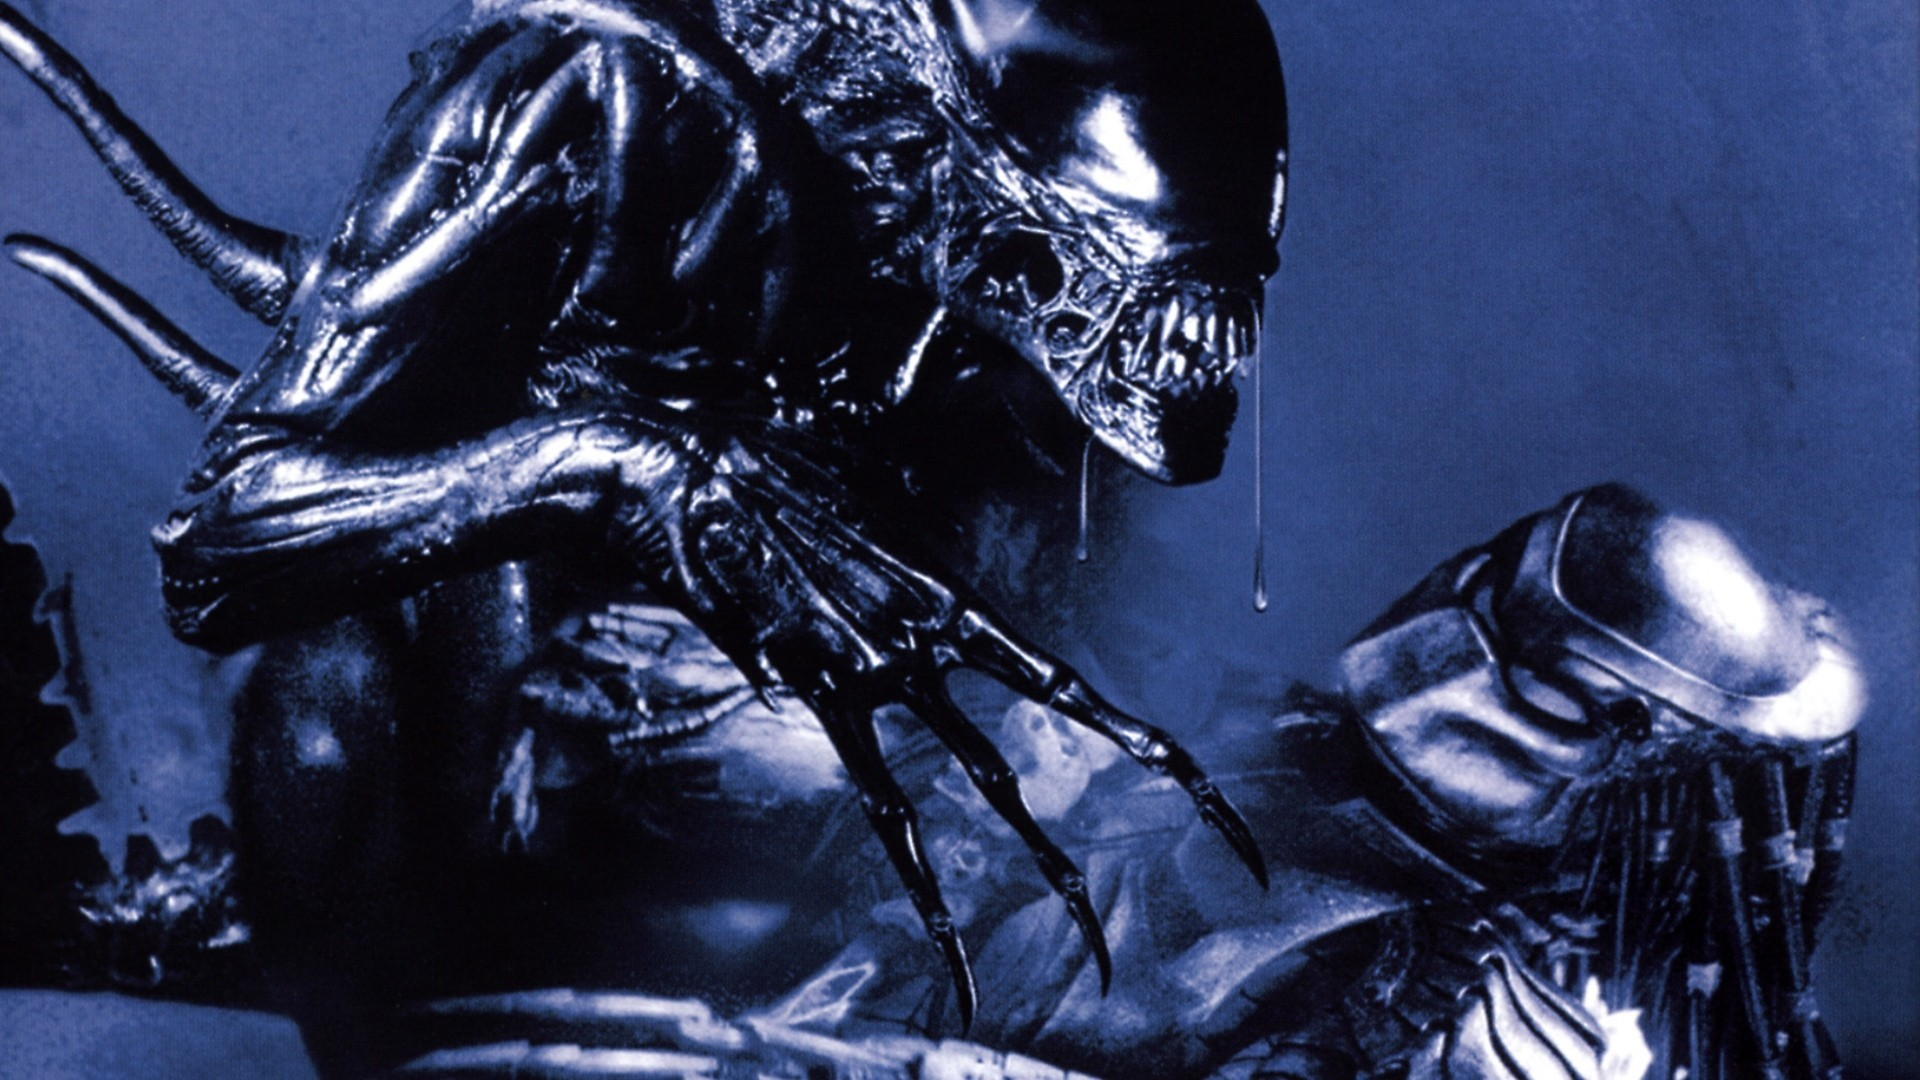 Alien Vs. Predator #4